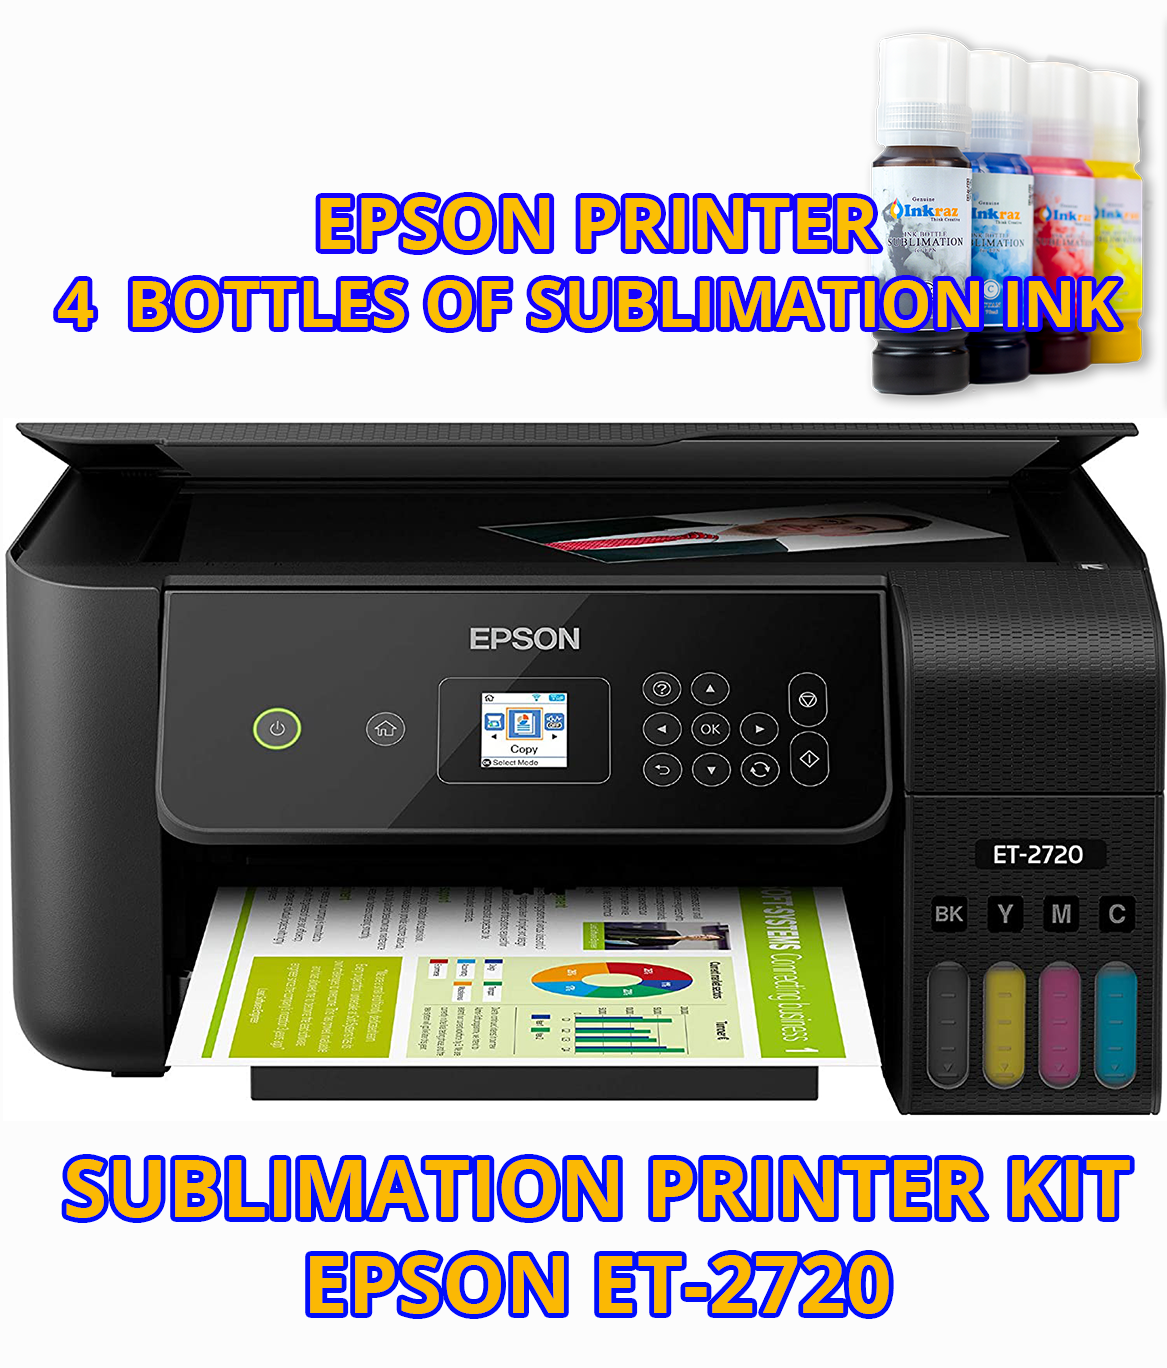 Epson Et 2720 Black Or White With Sublimation Ink Sublimation Printer Bundle Et2720 In 2021 Sublimation Printers Printing Solution Printer